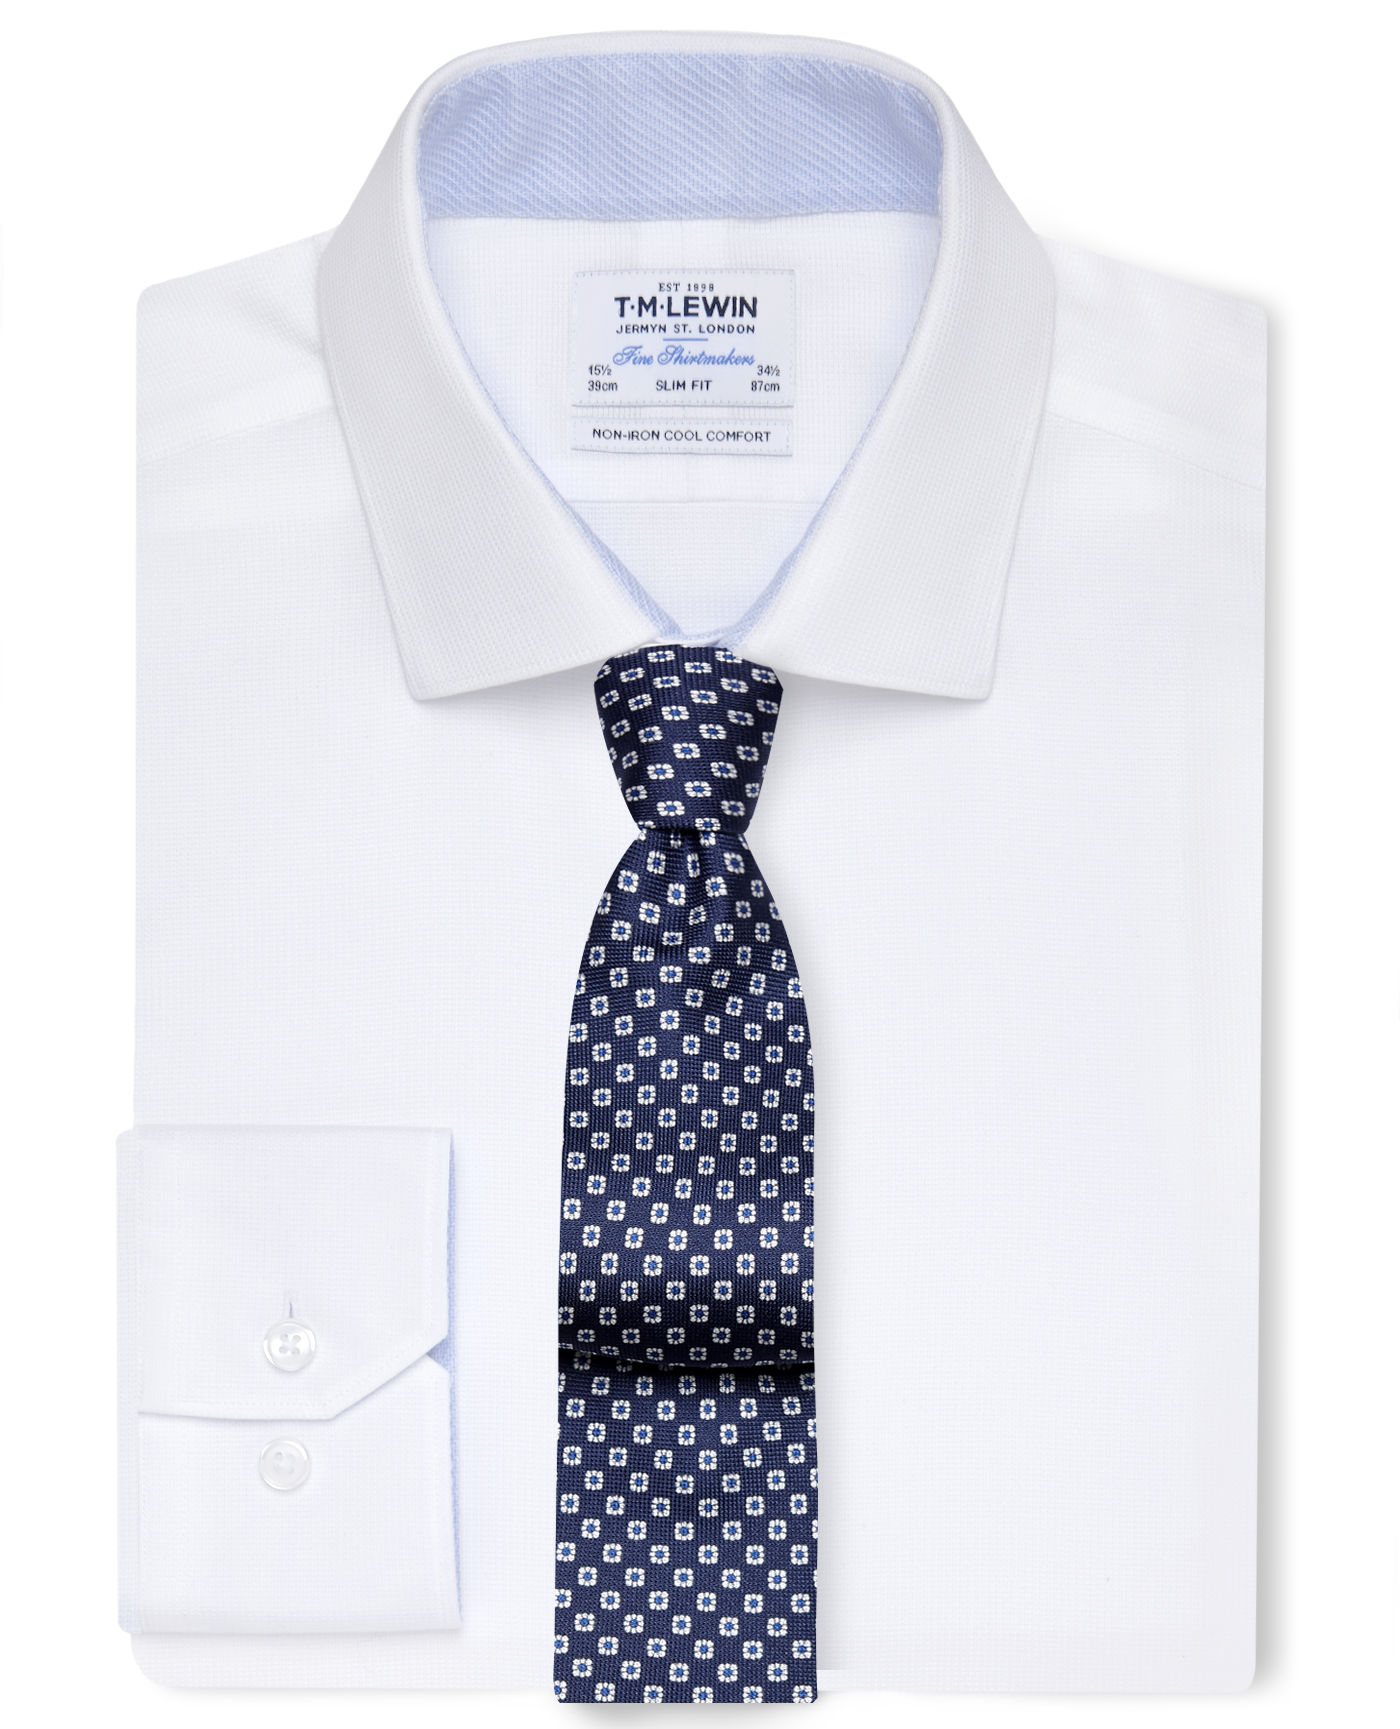 T.M.Lewin Cool Comfort Non-Iron Slim Fit White Dobby Weave Shirt - Button Cuff